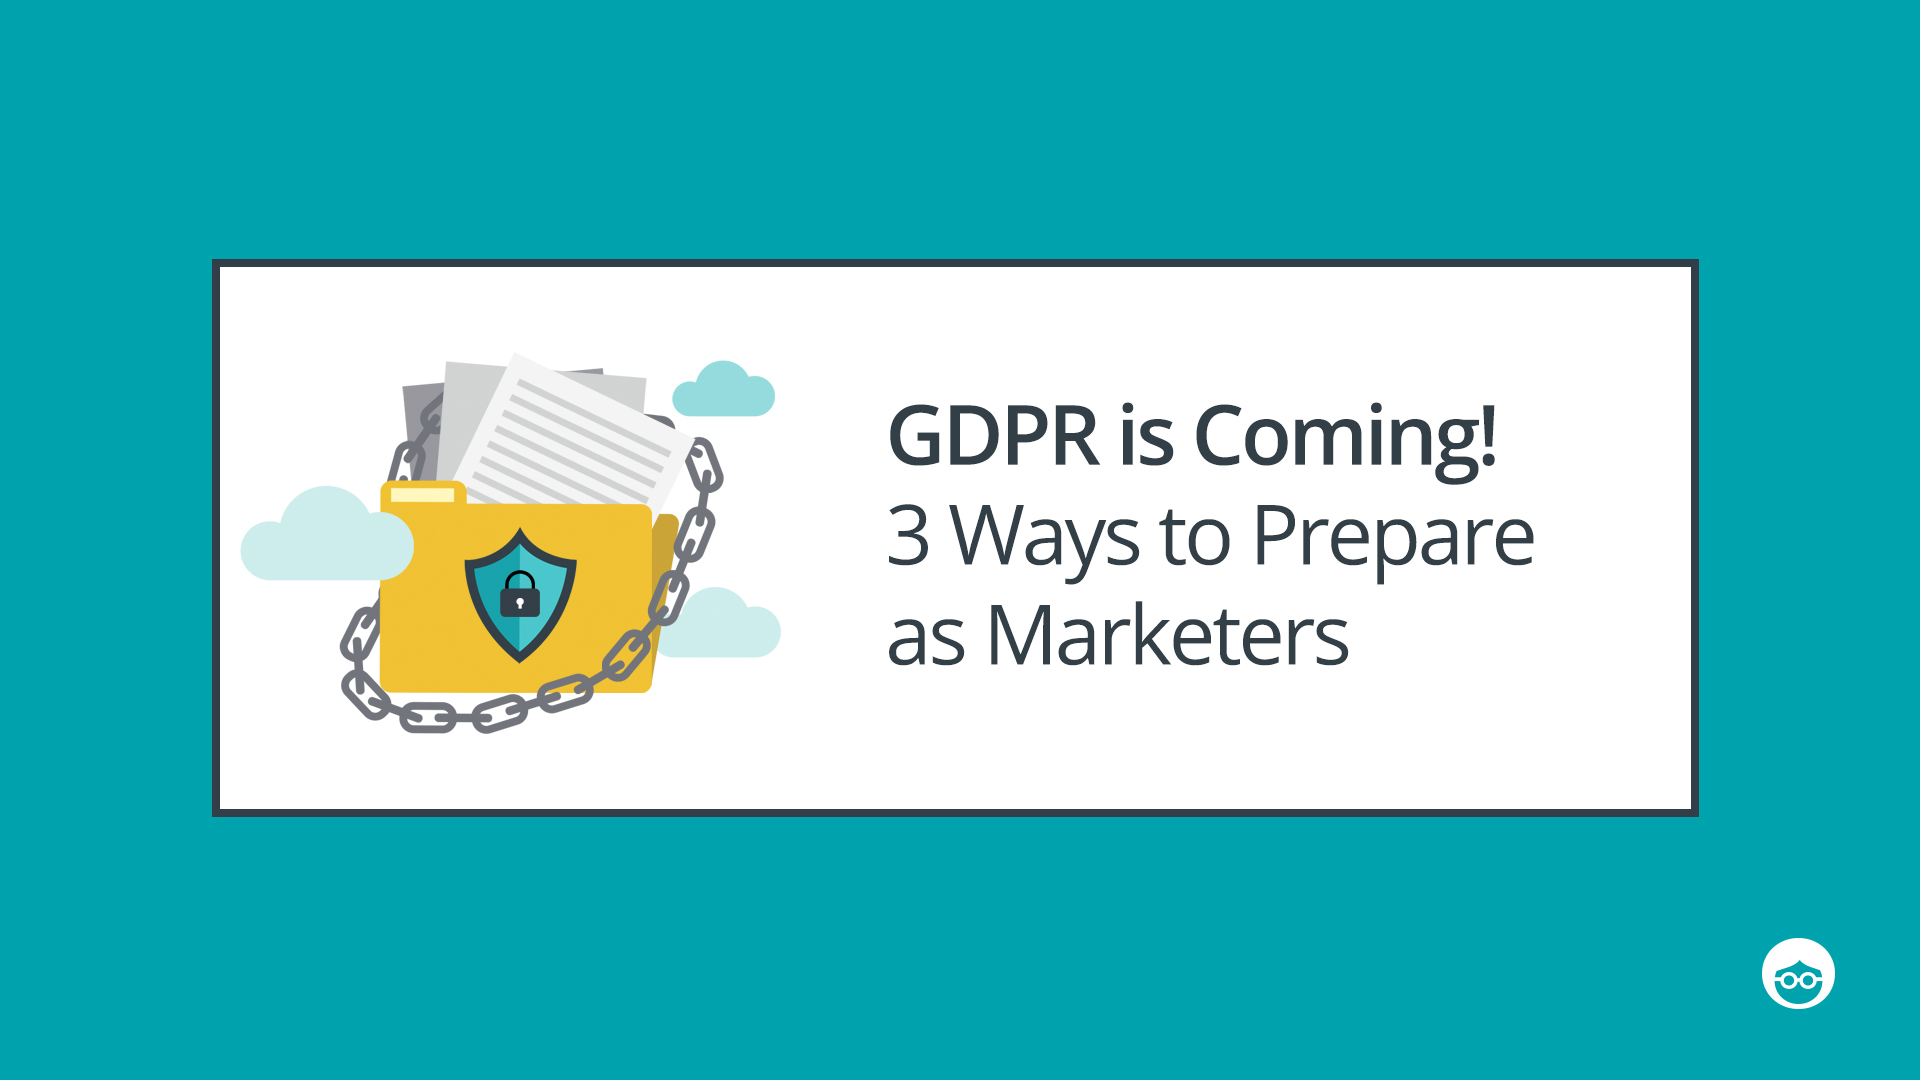 3 ways to get ready for GDPR